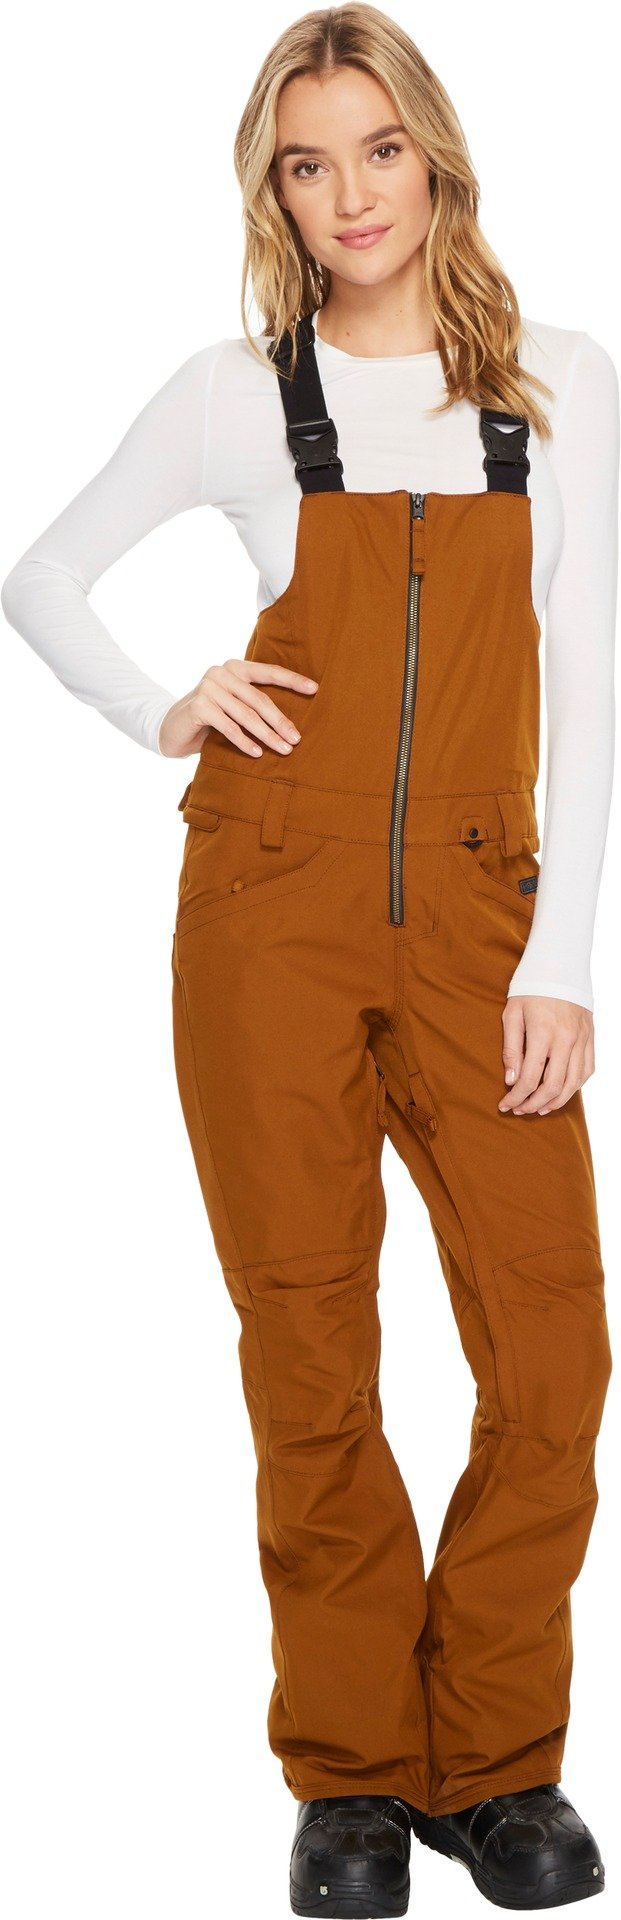 Volcom Snow Women's Verdi Bib Overalls Copper Small by Volcom